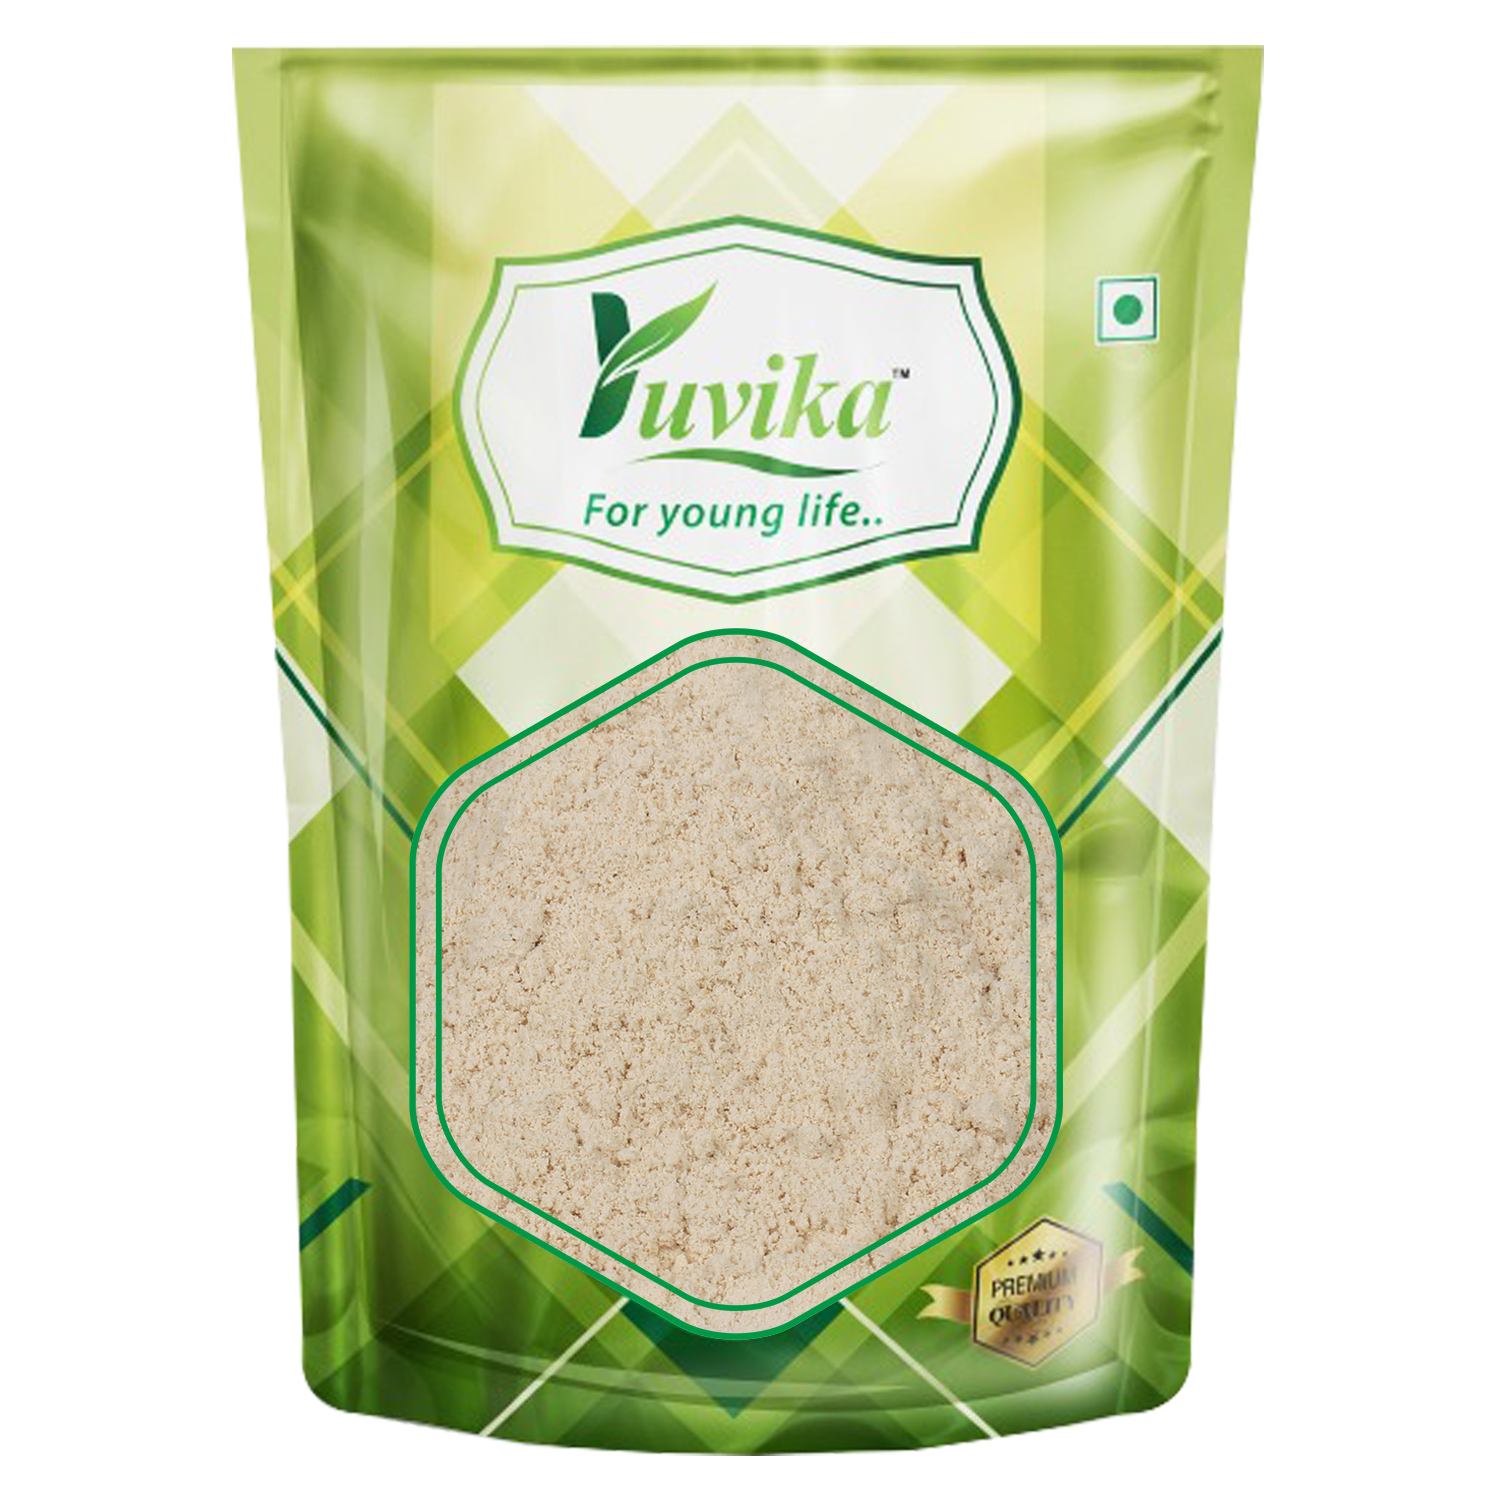 YUVIKA Vidharikand Safed Powder - Bidharkand Safed Powder - Puerariatuberosa - Indian Kudzu